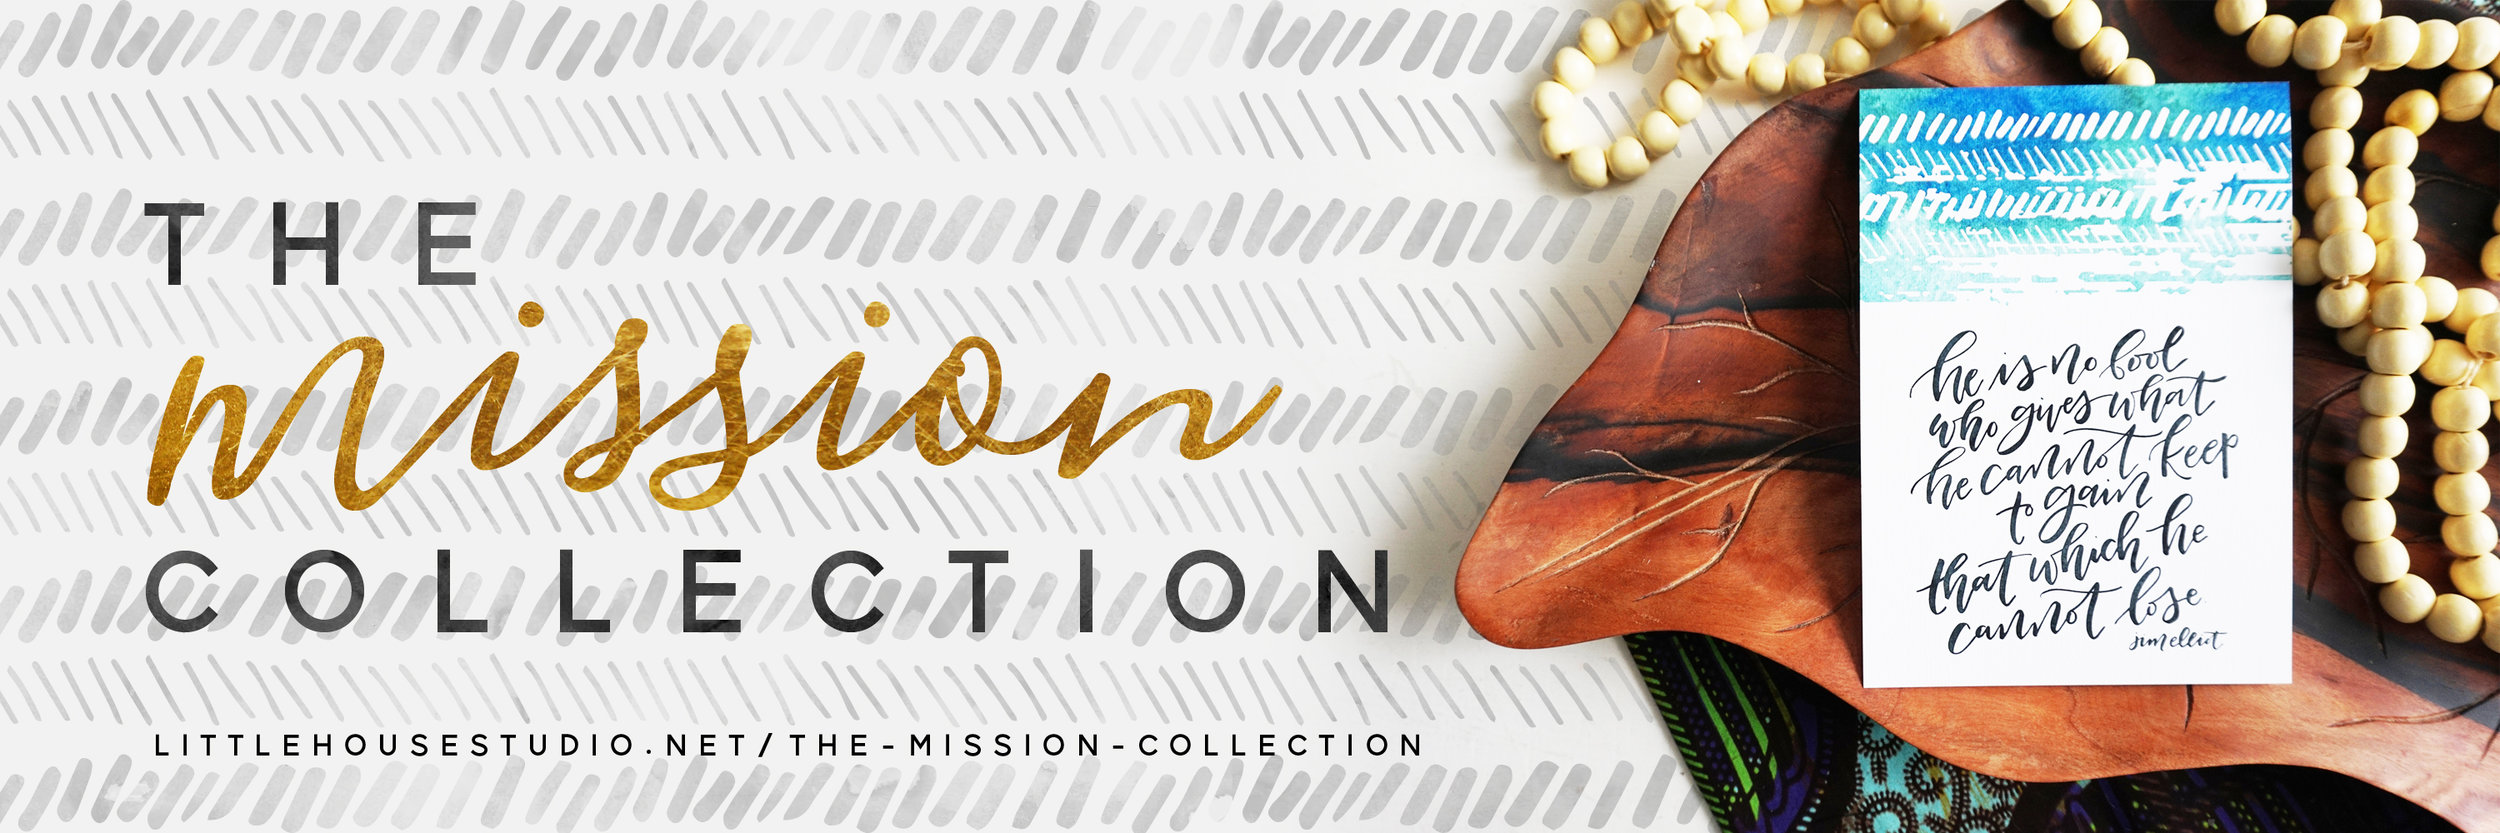 The New Mission Collection  - a portion of all proceeds go toward  missions work in Togo, Africa